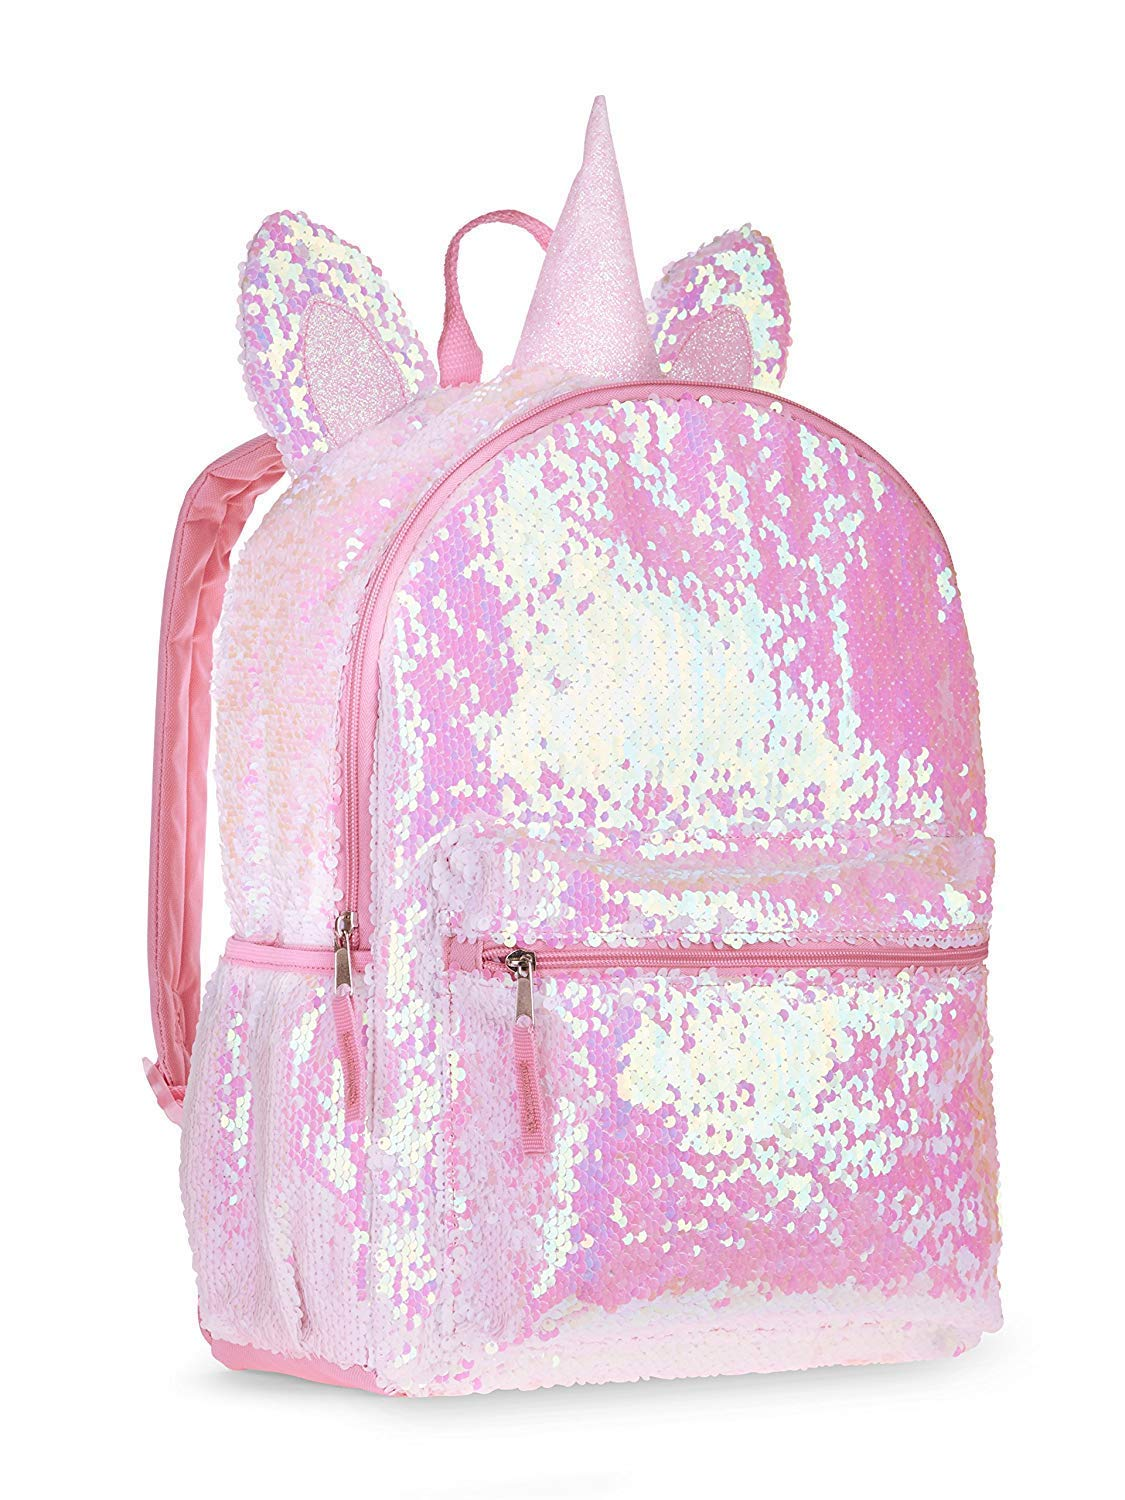 3965e78b7e91 Kitty Cat Sequin Backpack for Girls -- Deluxe Kitten Backpack with 2 Way  Sequins, 16 Inch